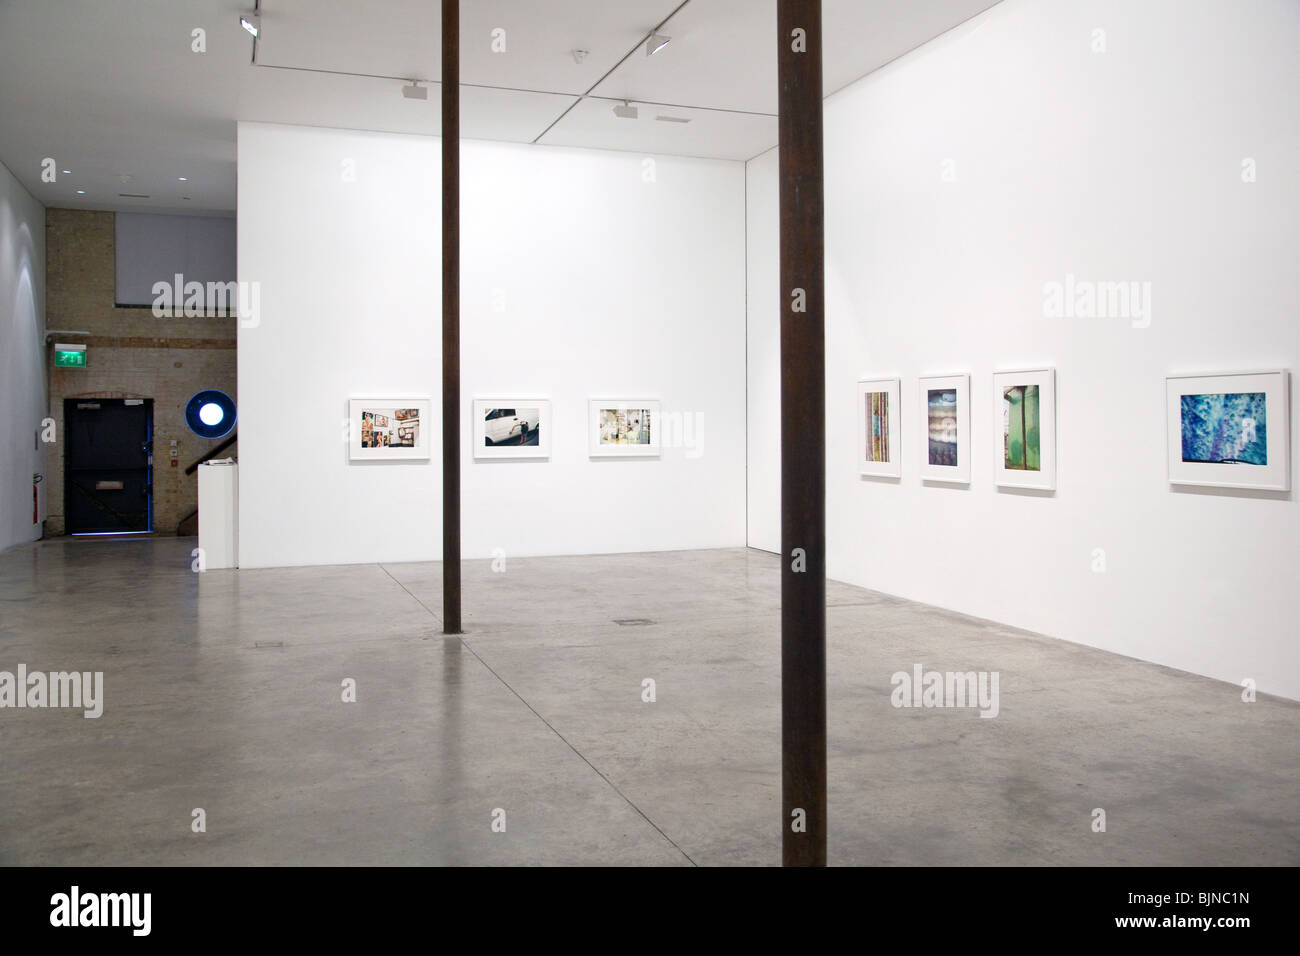 Solo exhibition of photographs of an William Eggleston at Victoria Miro gallery in London - Stock Image